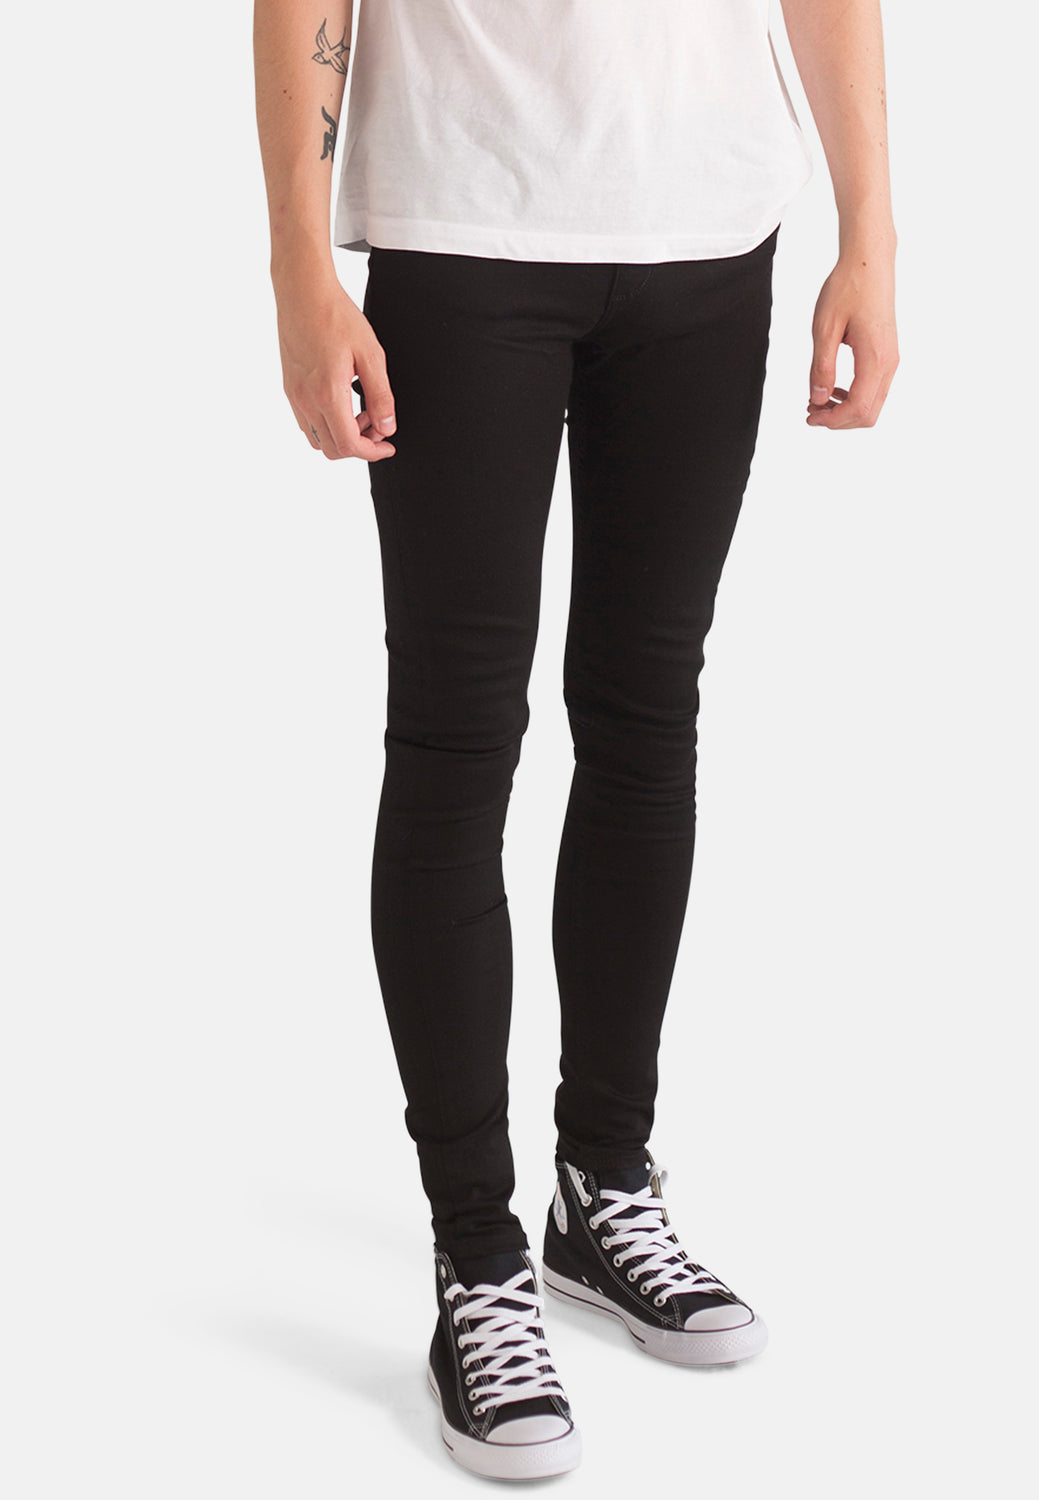 CODY // Organic Super Skinny Mid Rise Jeans in Black Denim - Monkee Genes Organic Jeans Denim - Men's Silhouette Monkee Genes Official  Monkee Genes Official